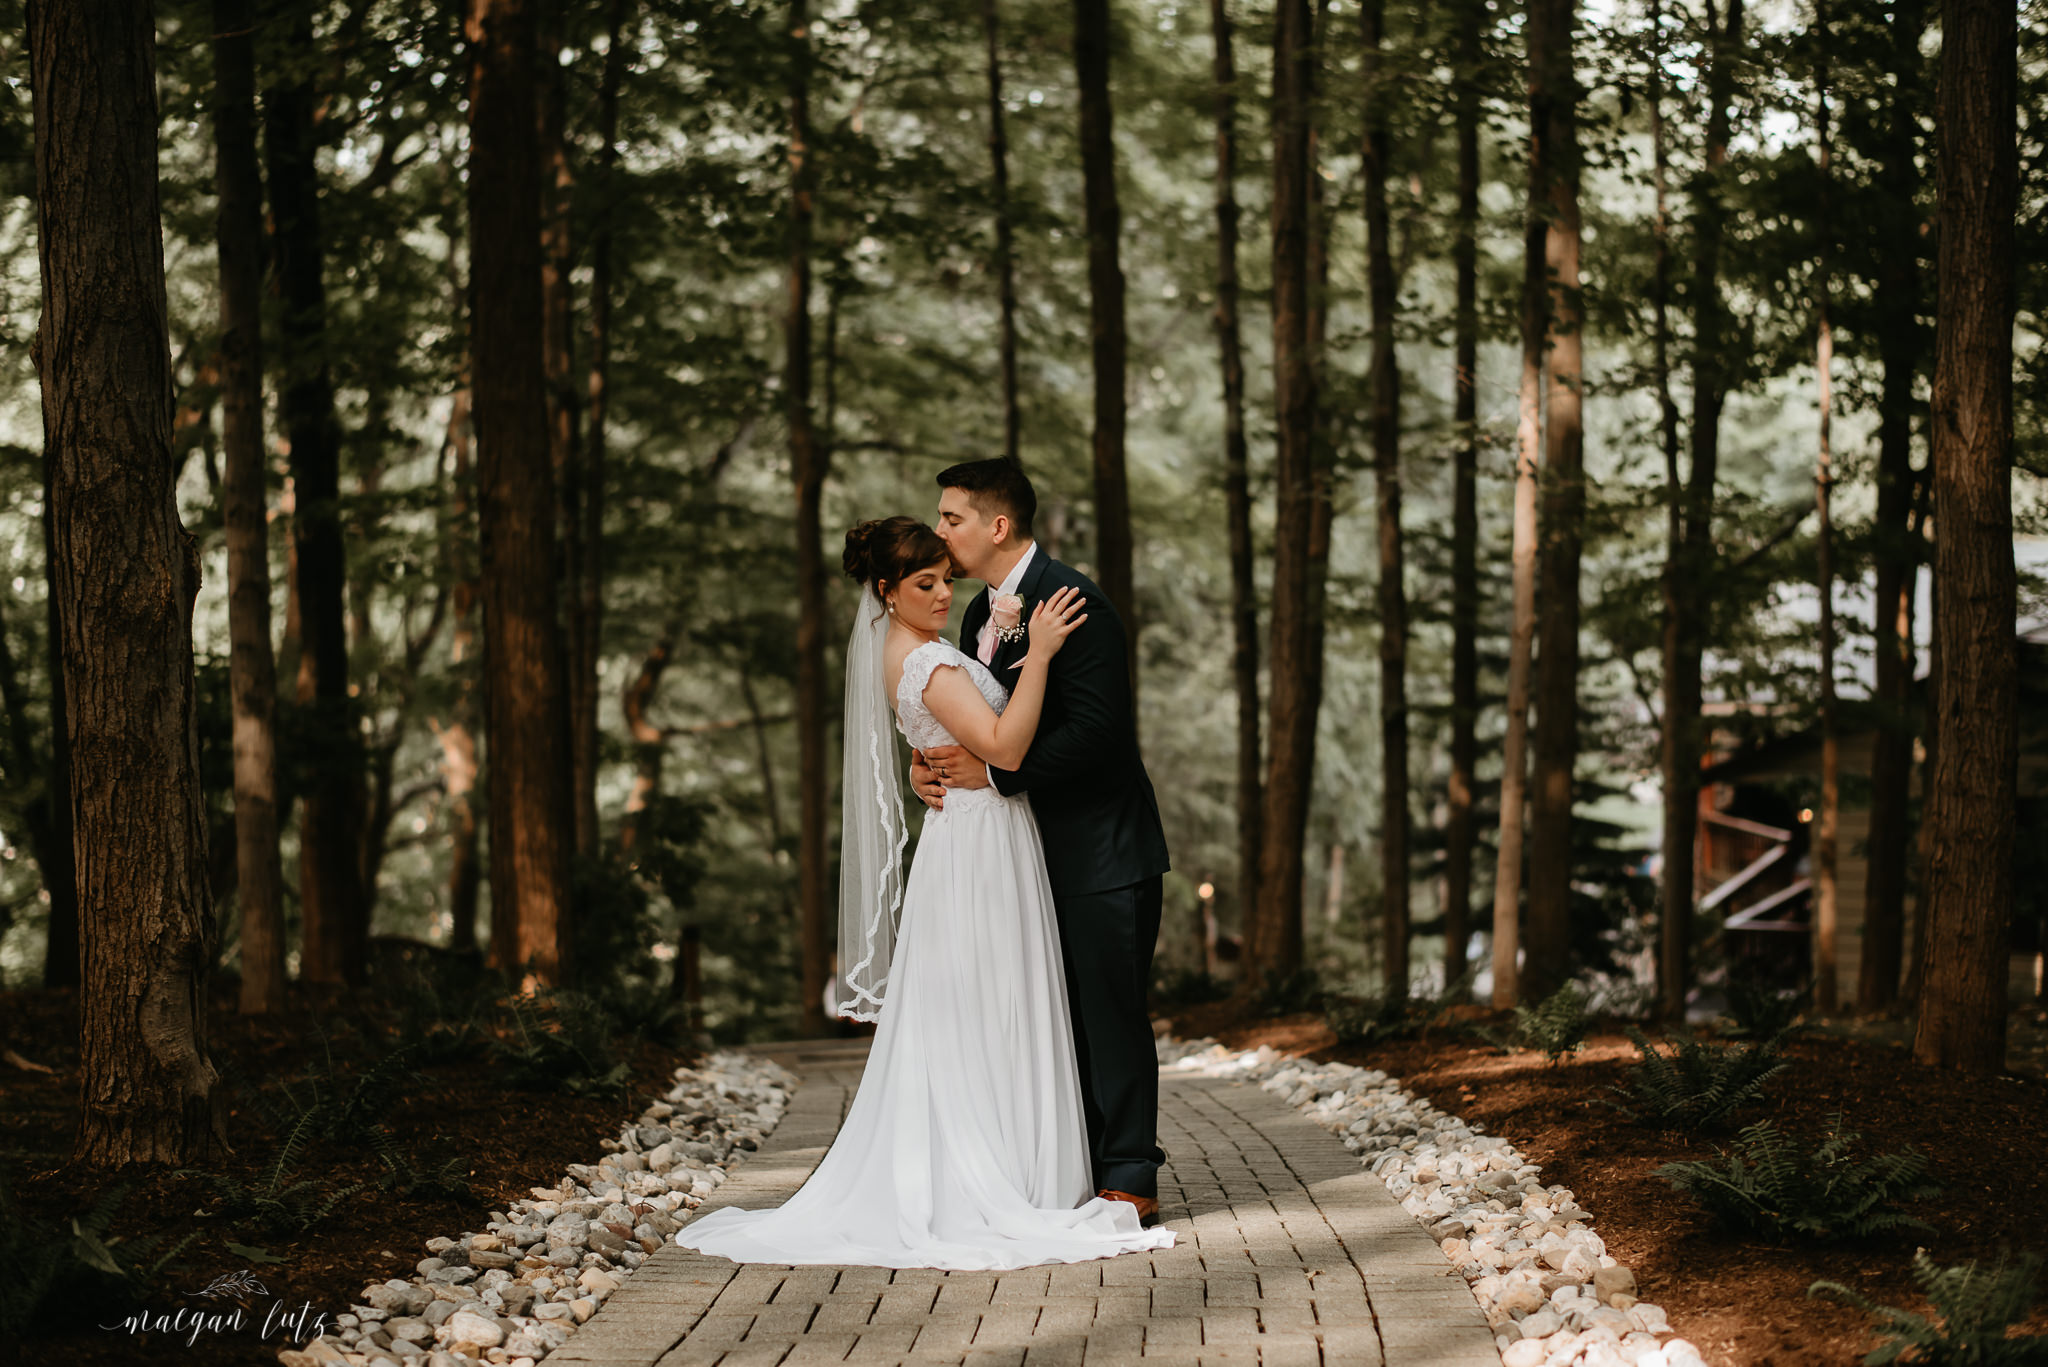 Mr. & Mrs. Radcliff - Wedding at The Stroudmoor Country Inn, Stroudsburg, PA